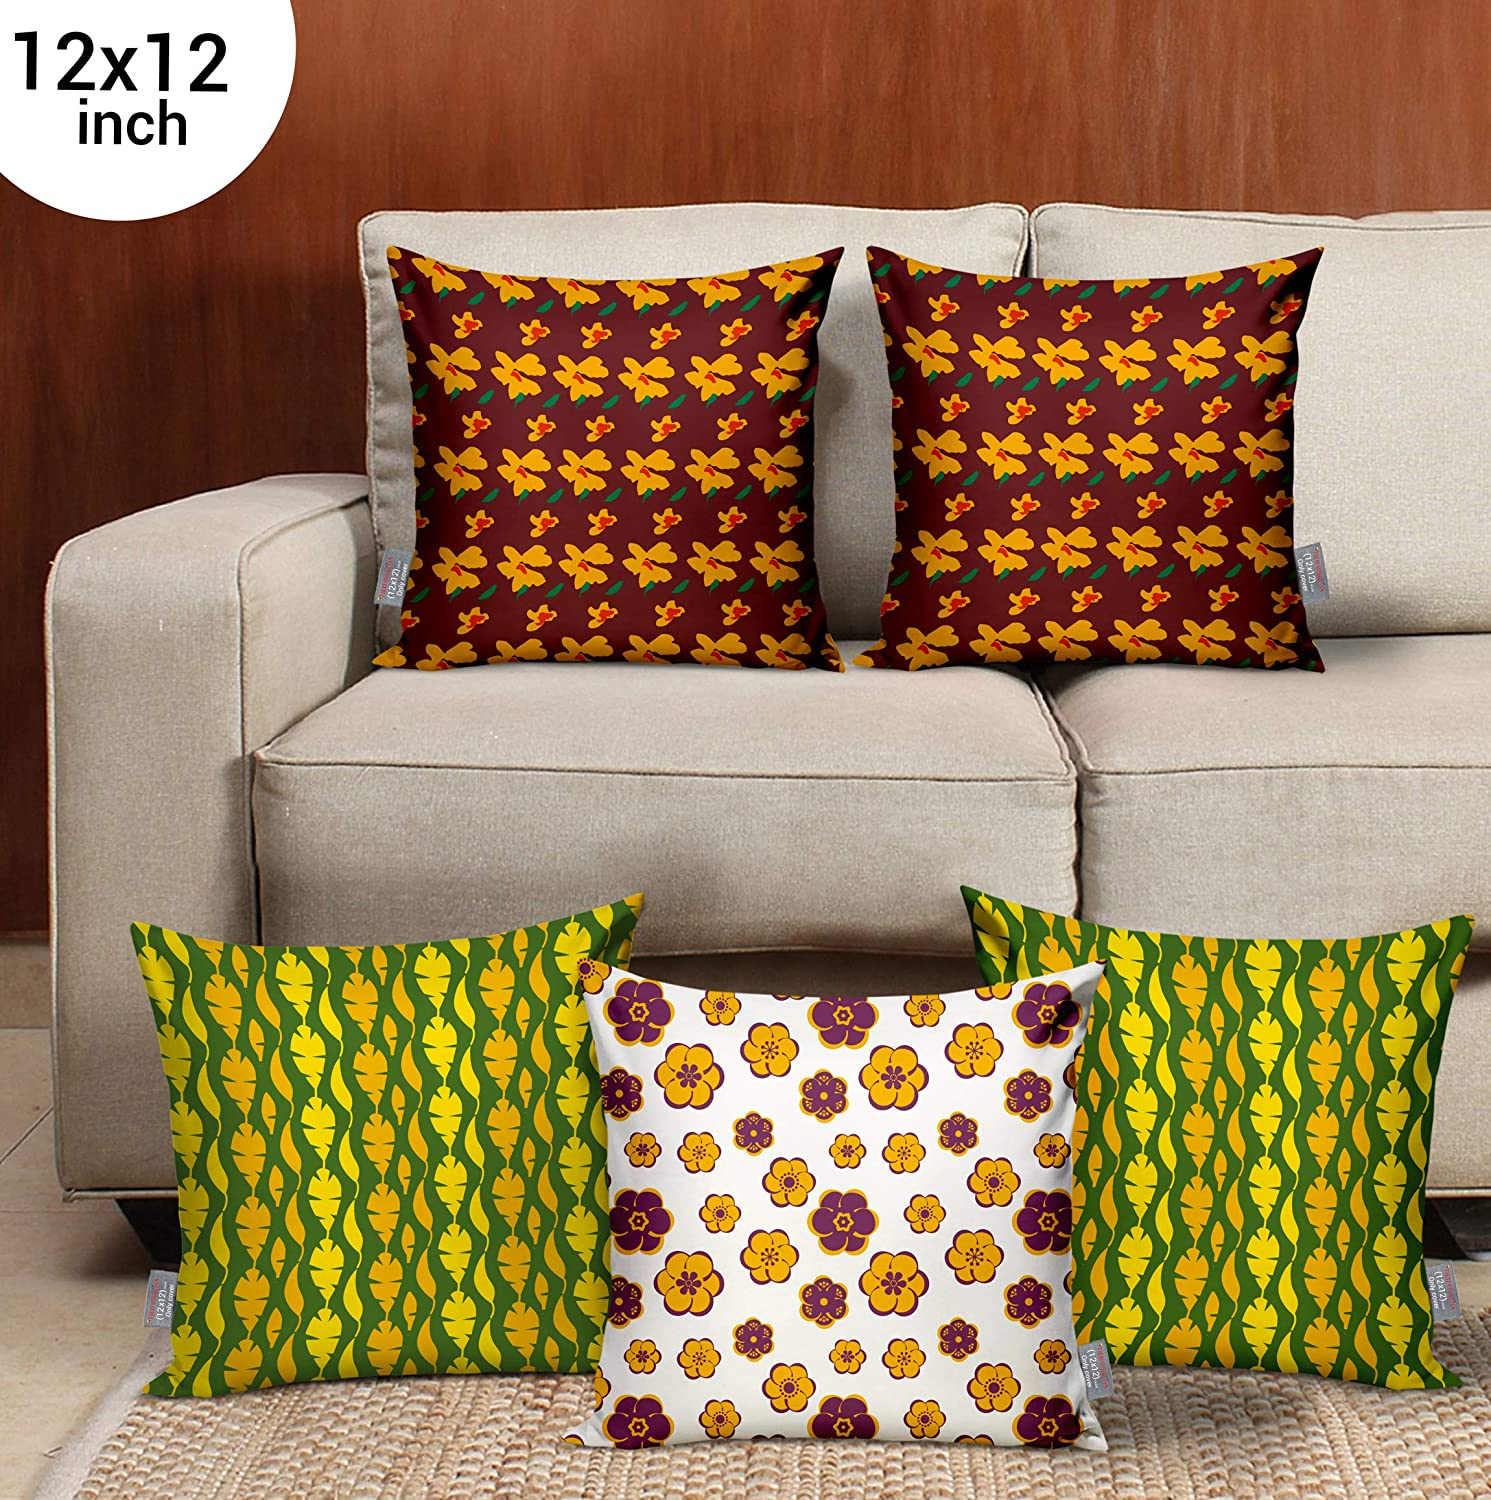 Buy Tied Ribbons Decorative Cushion Covers 12x12 Set Of 5 For Sofa Bedroom Living Room Decoration Multicolor Cute Valentines Day Gifts For Girlfriend Boyfriend Husband Girls Online At Low Prices In